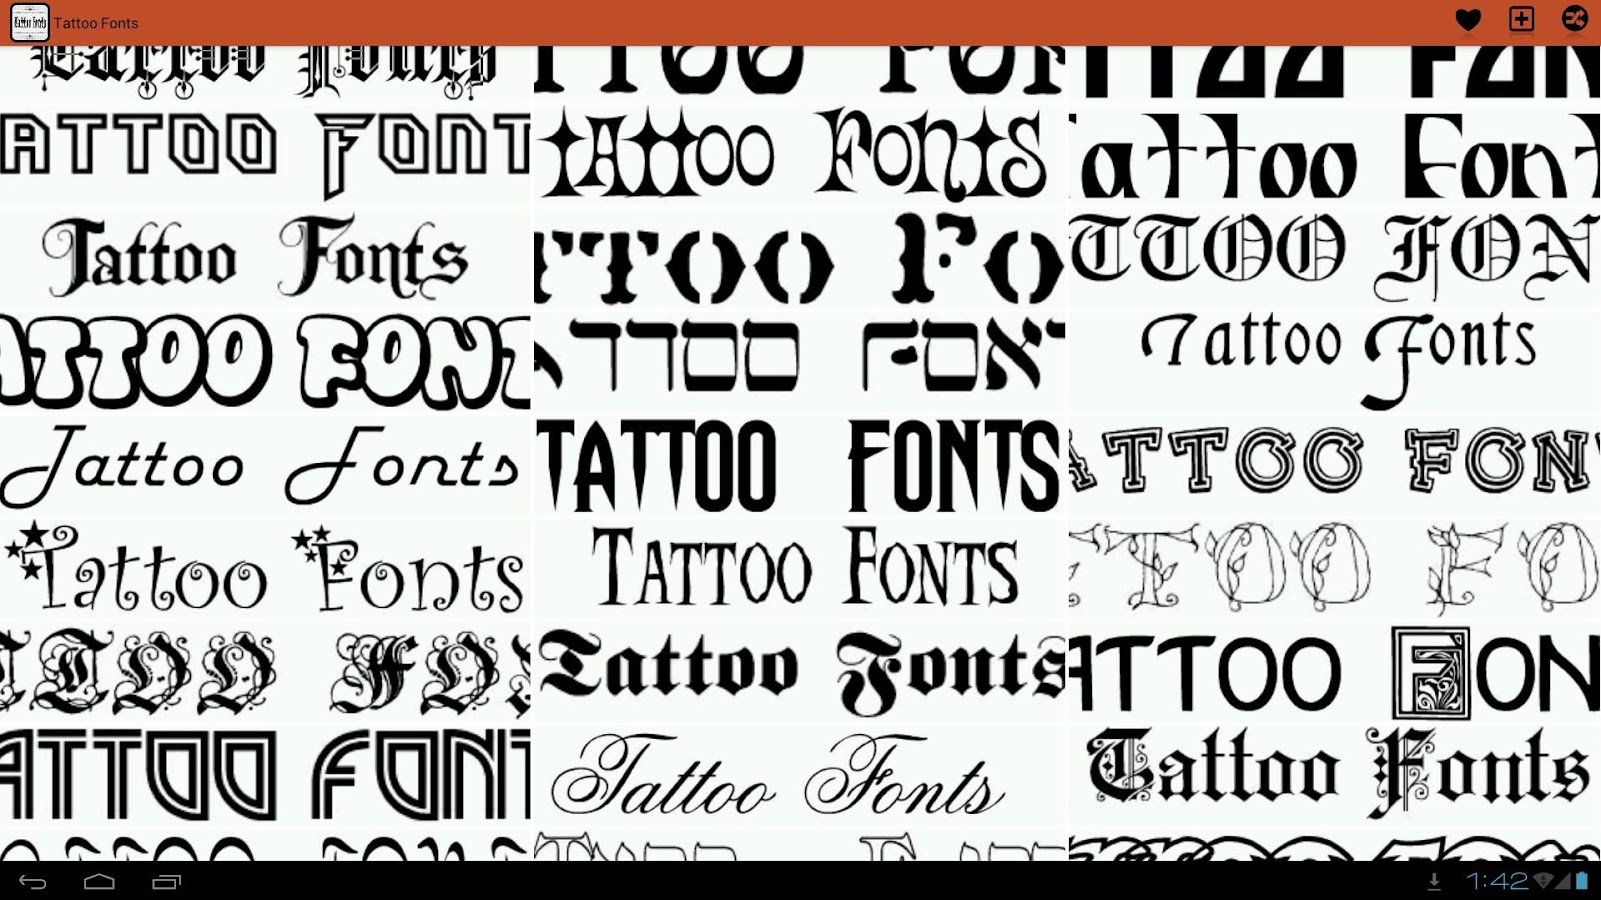 Favorito Tattoo Fonts Ideas - Android Apps on Google Play MQ26